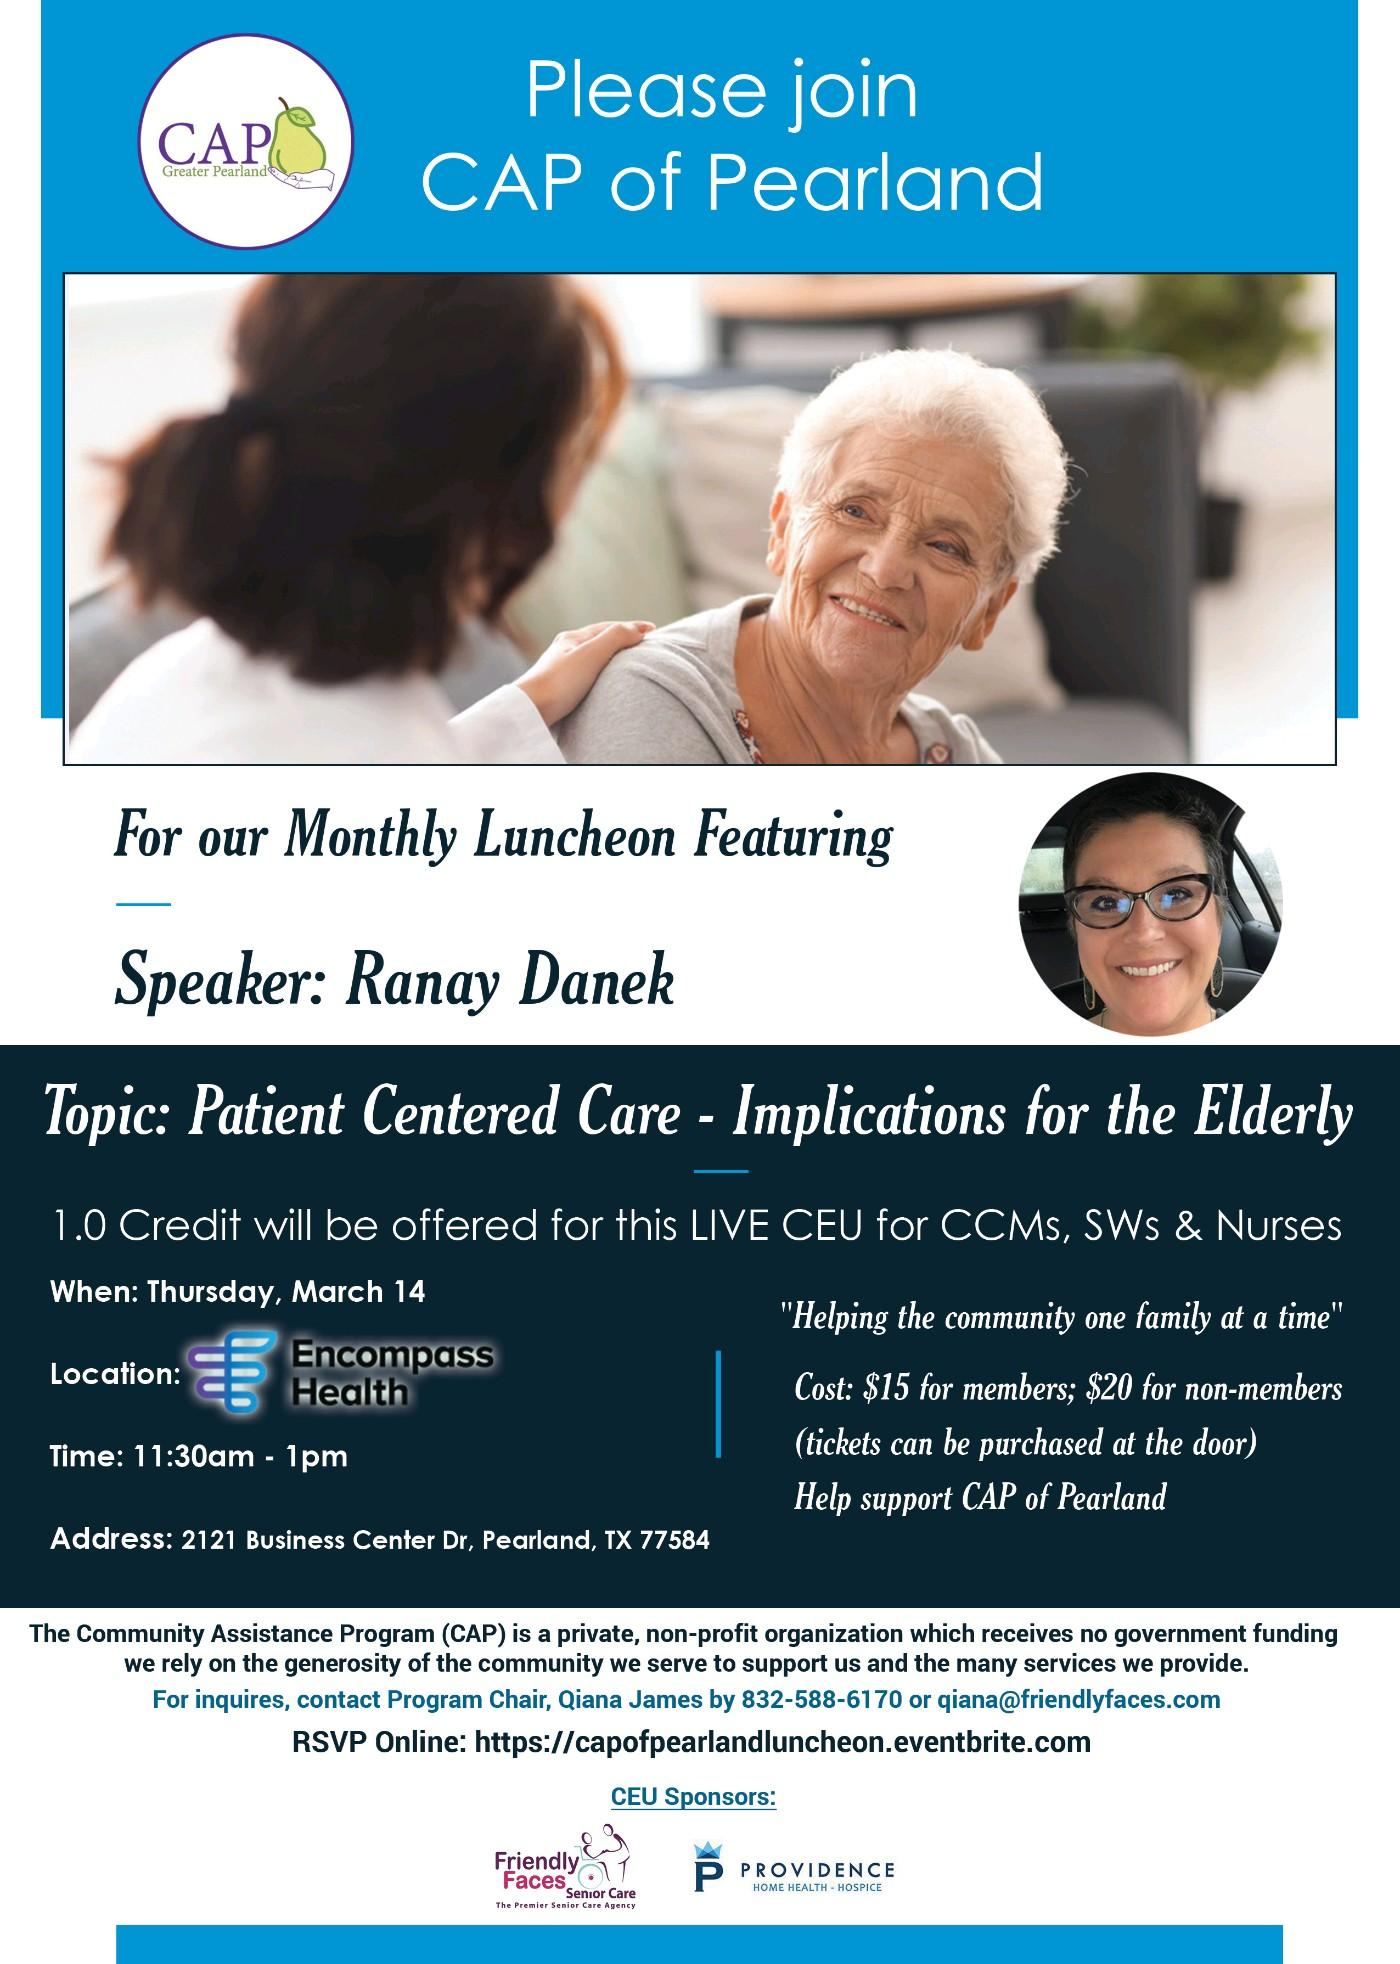 CAP of Greater Pearland March 2019 General Luncheon @ Encompass Health of Pearland